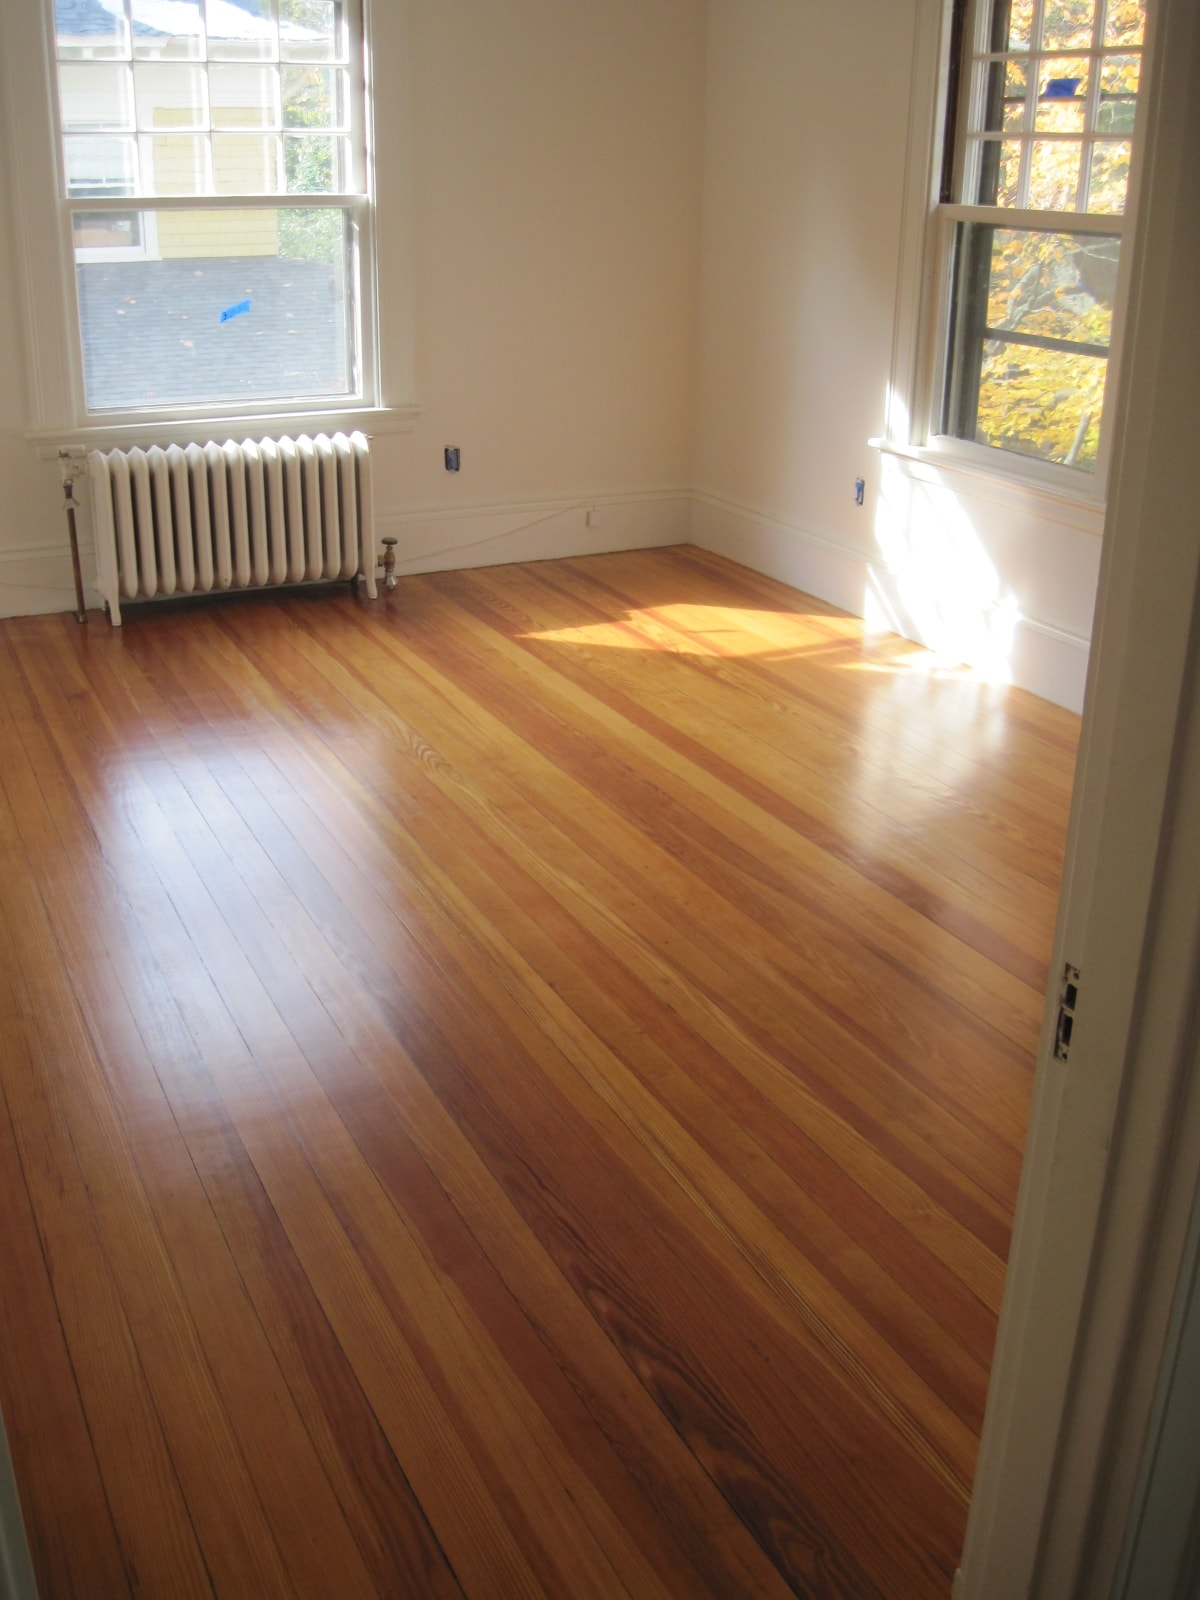 Antique Heart Pine Flooring Medford MA 9-min